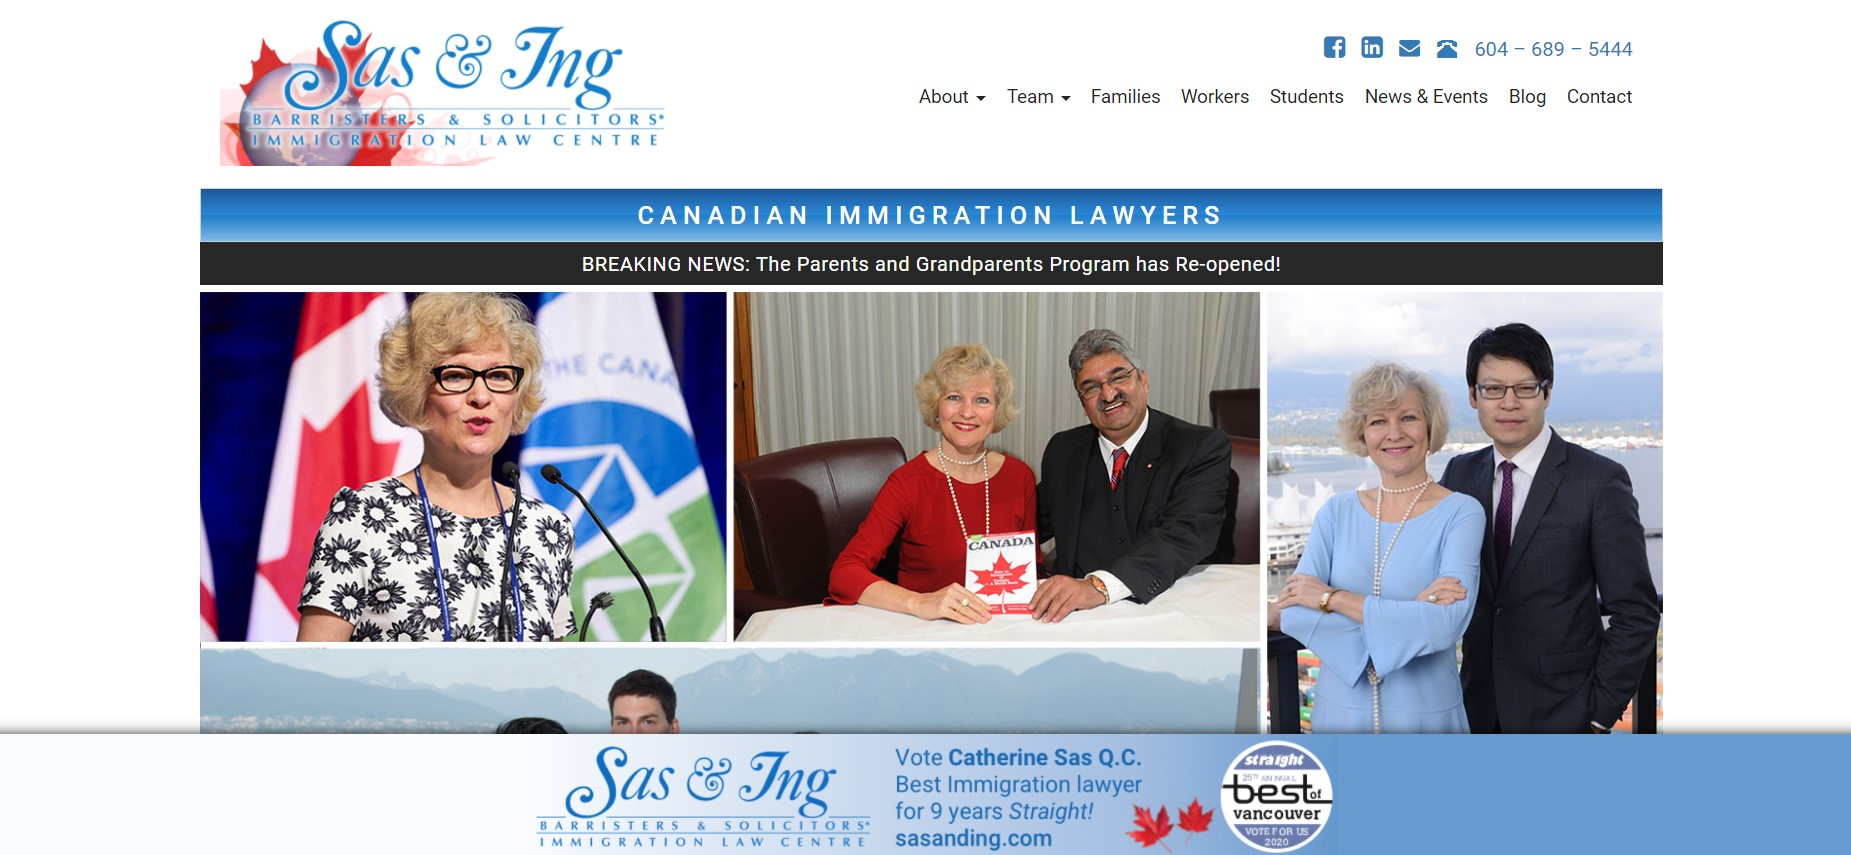 sas & ing immigration attorney in vancouver